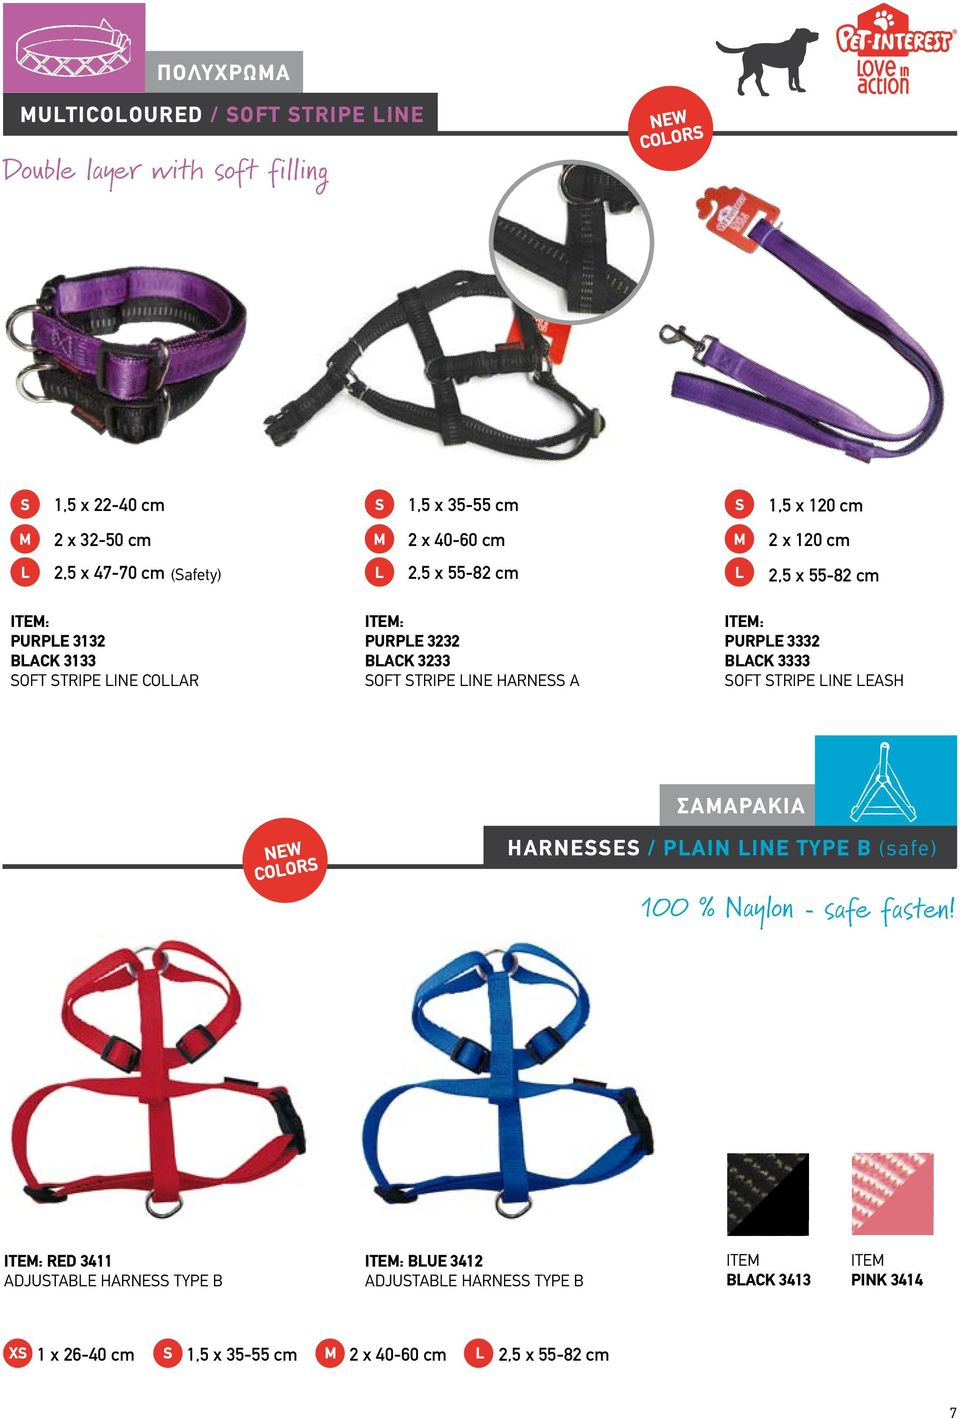 LINE HARNESS A ITEM: PURPLE 3332 BLACK 3333 SOFT STRIPE LINE LEASH ΣΑΜΑΡΑΚΙΑ NEW COLORS HARNESSES / PLAIN LINE TYPE B (safe) 100 % Naylon - safe fasten!